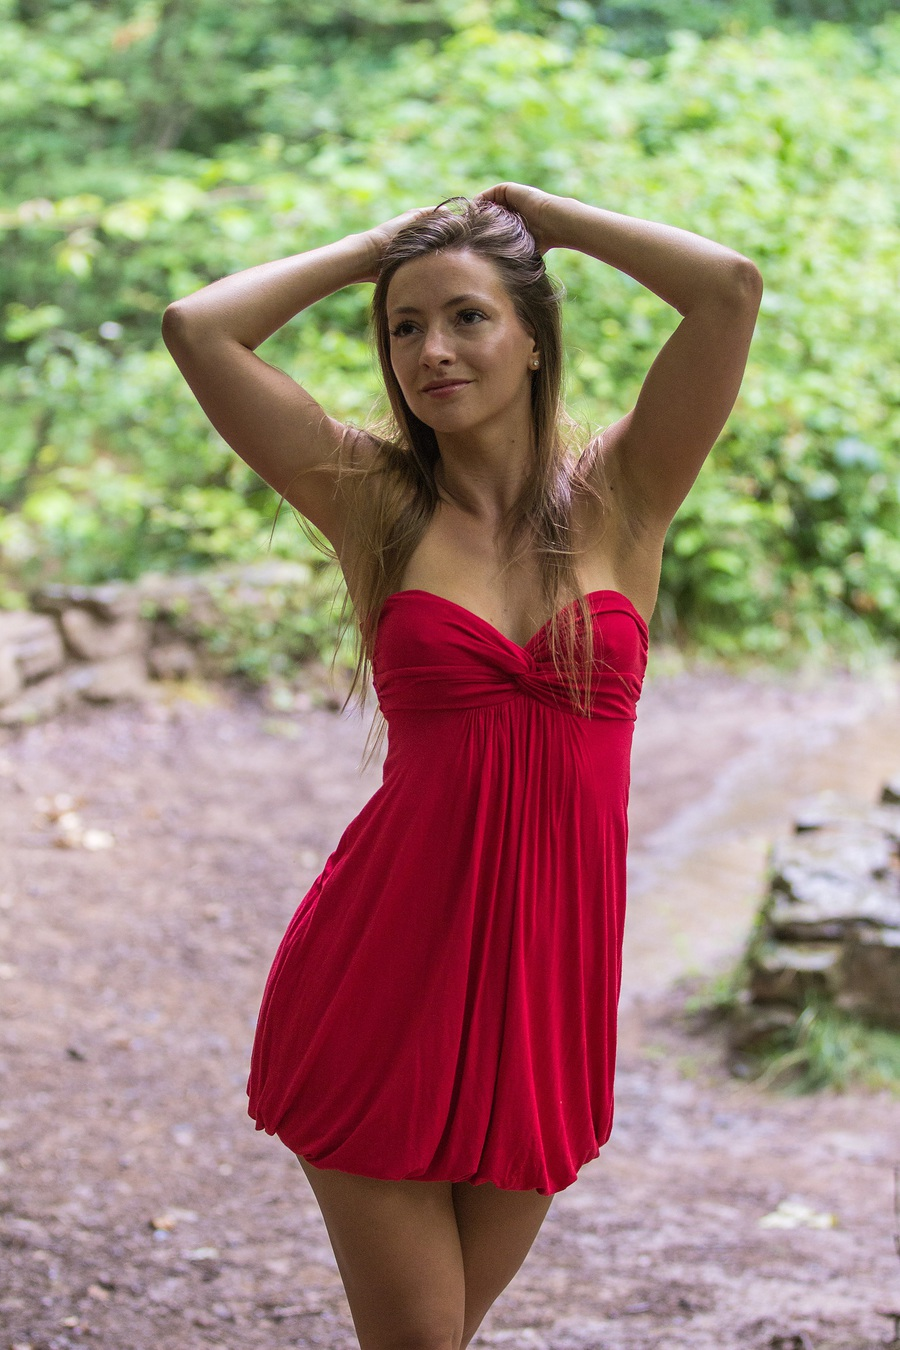 Red Topaz / Photography by CharlesPhoto, Model Claire Topaz, Post processing by CharlesPhoto / Uploaded 28th August 2015 @ 10:27 PM